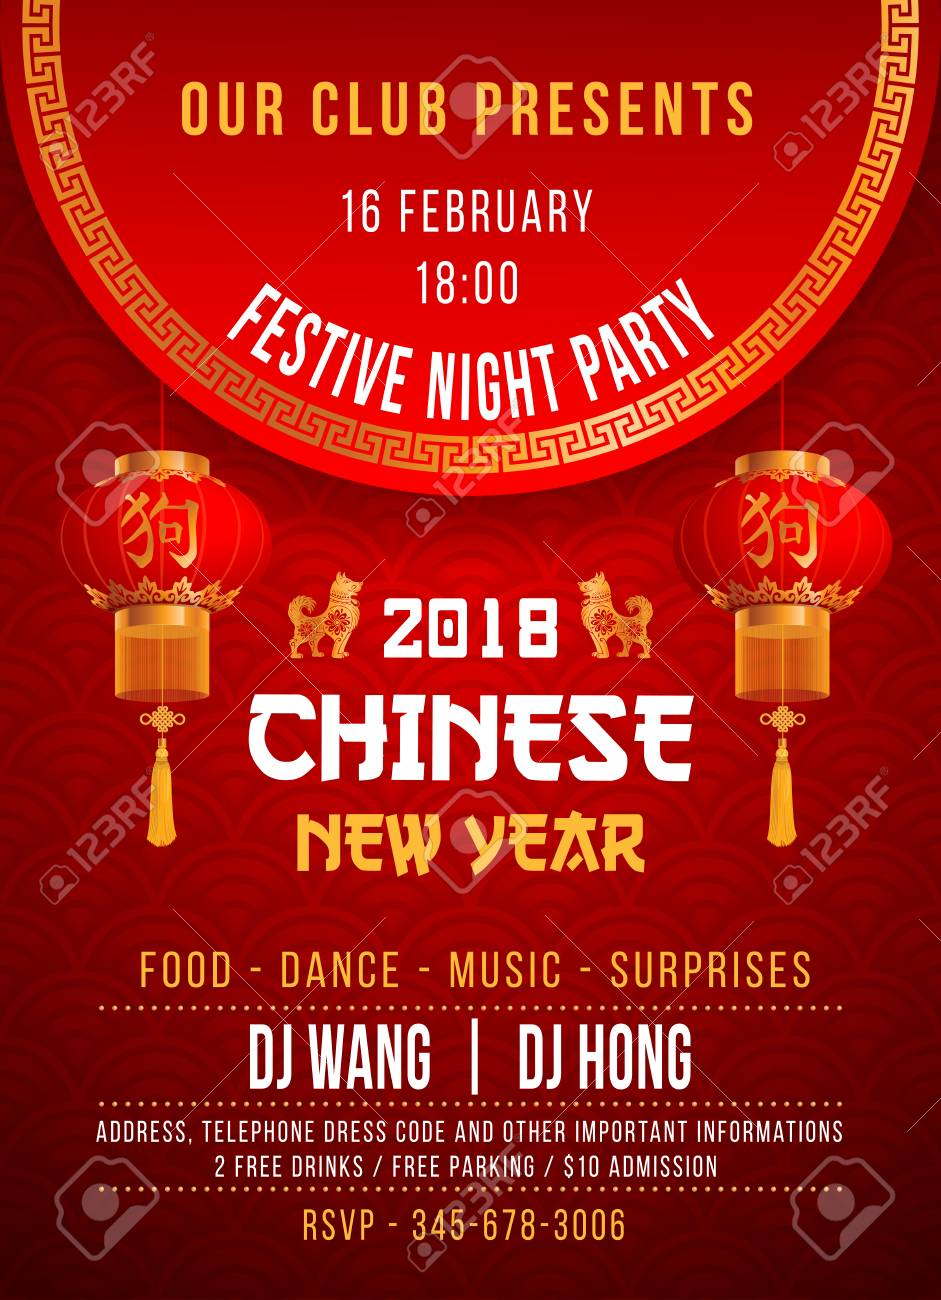 chinese new year party template with chinese lanterns design